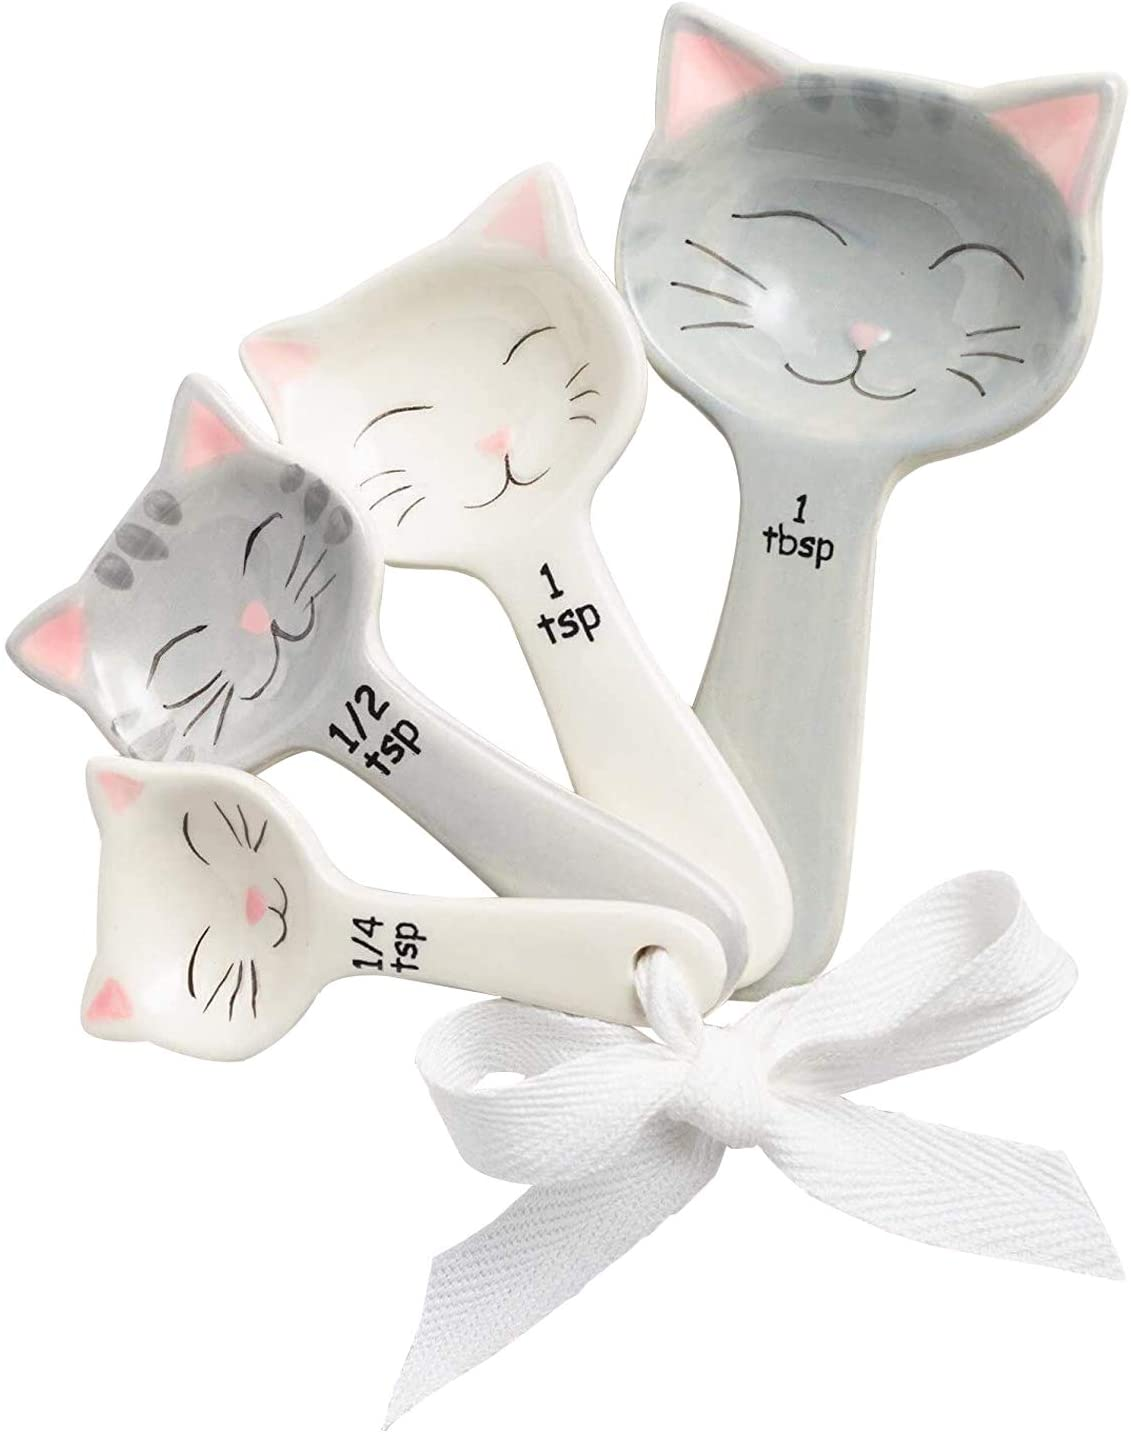 cooking-gifts-spoons